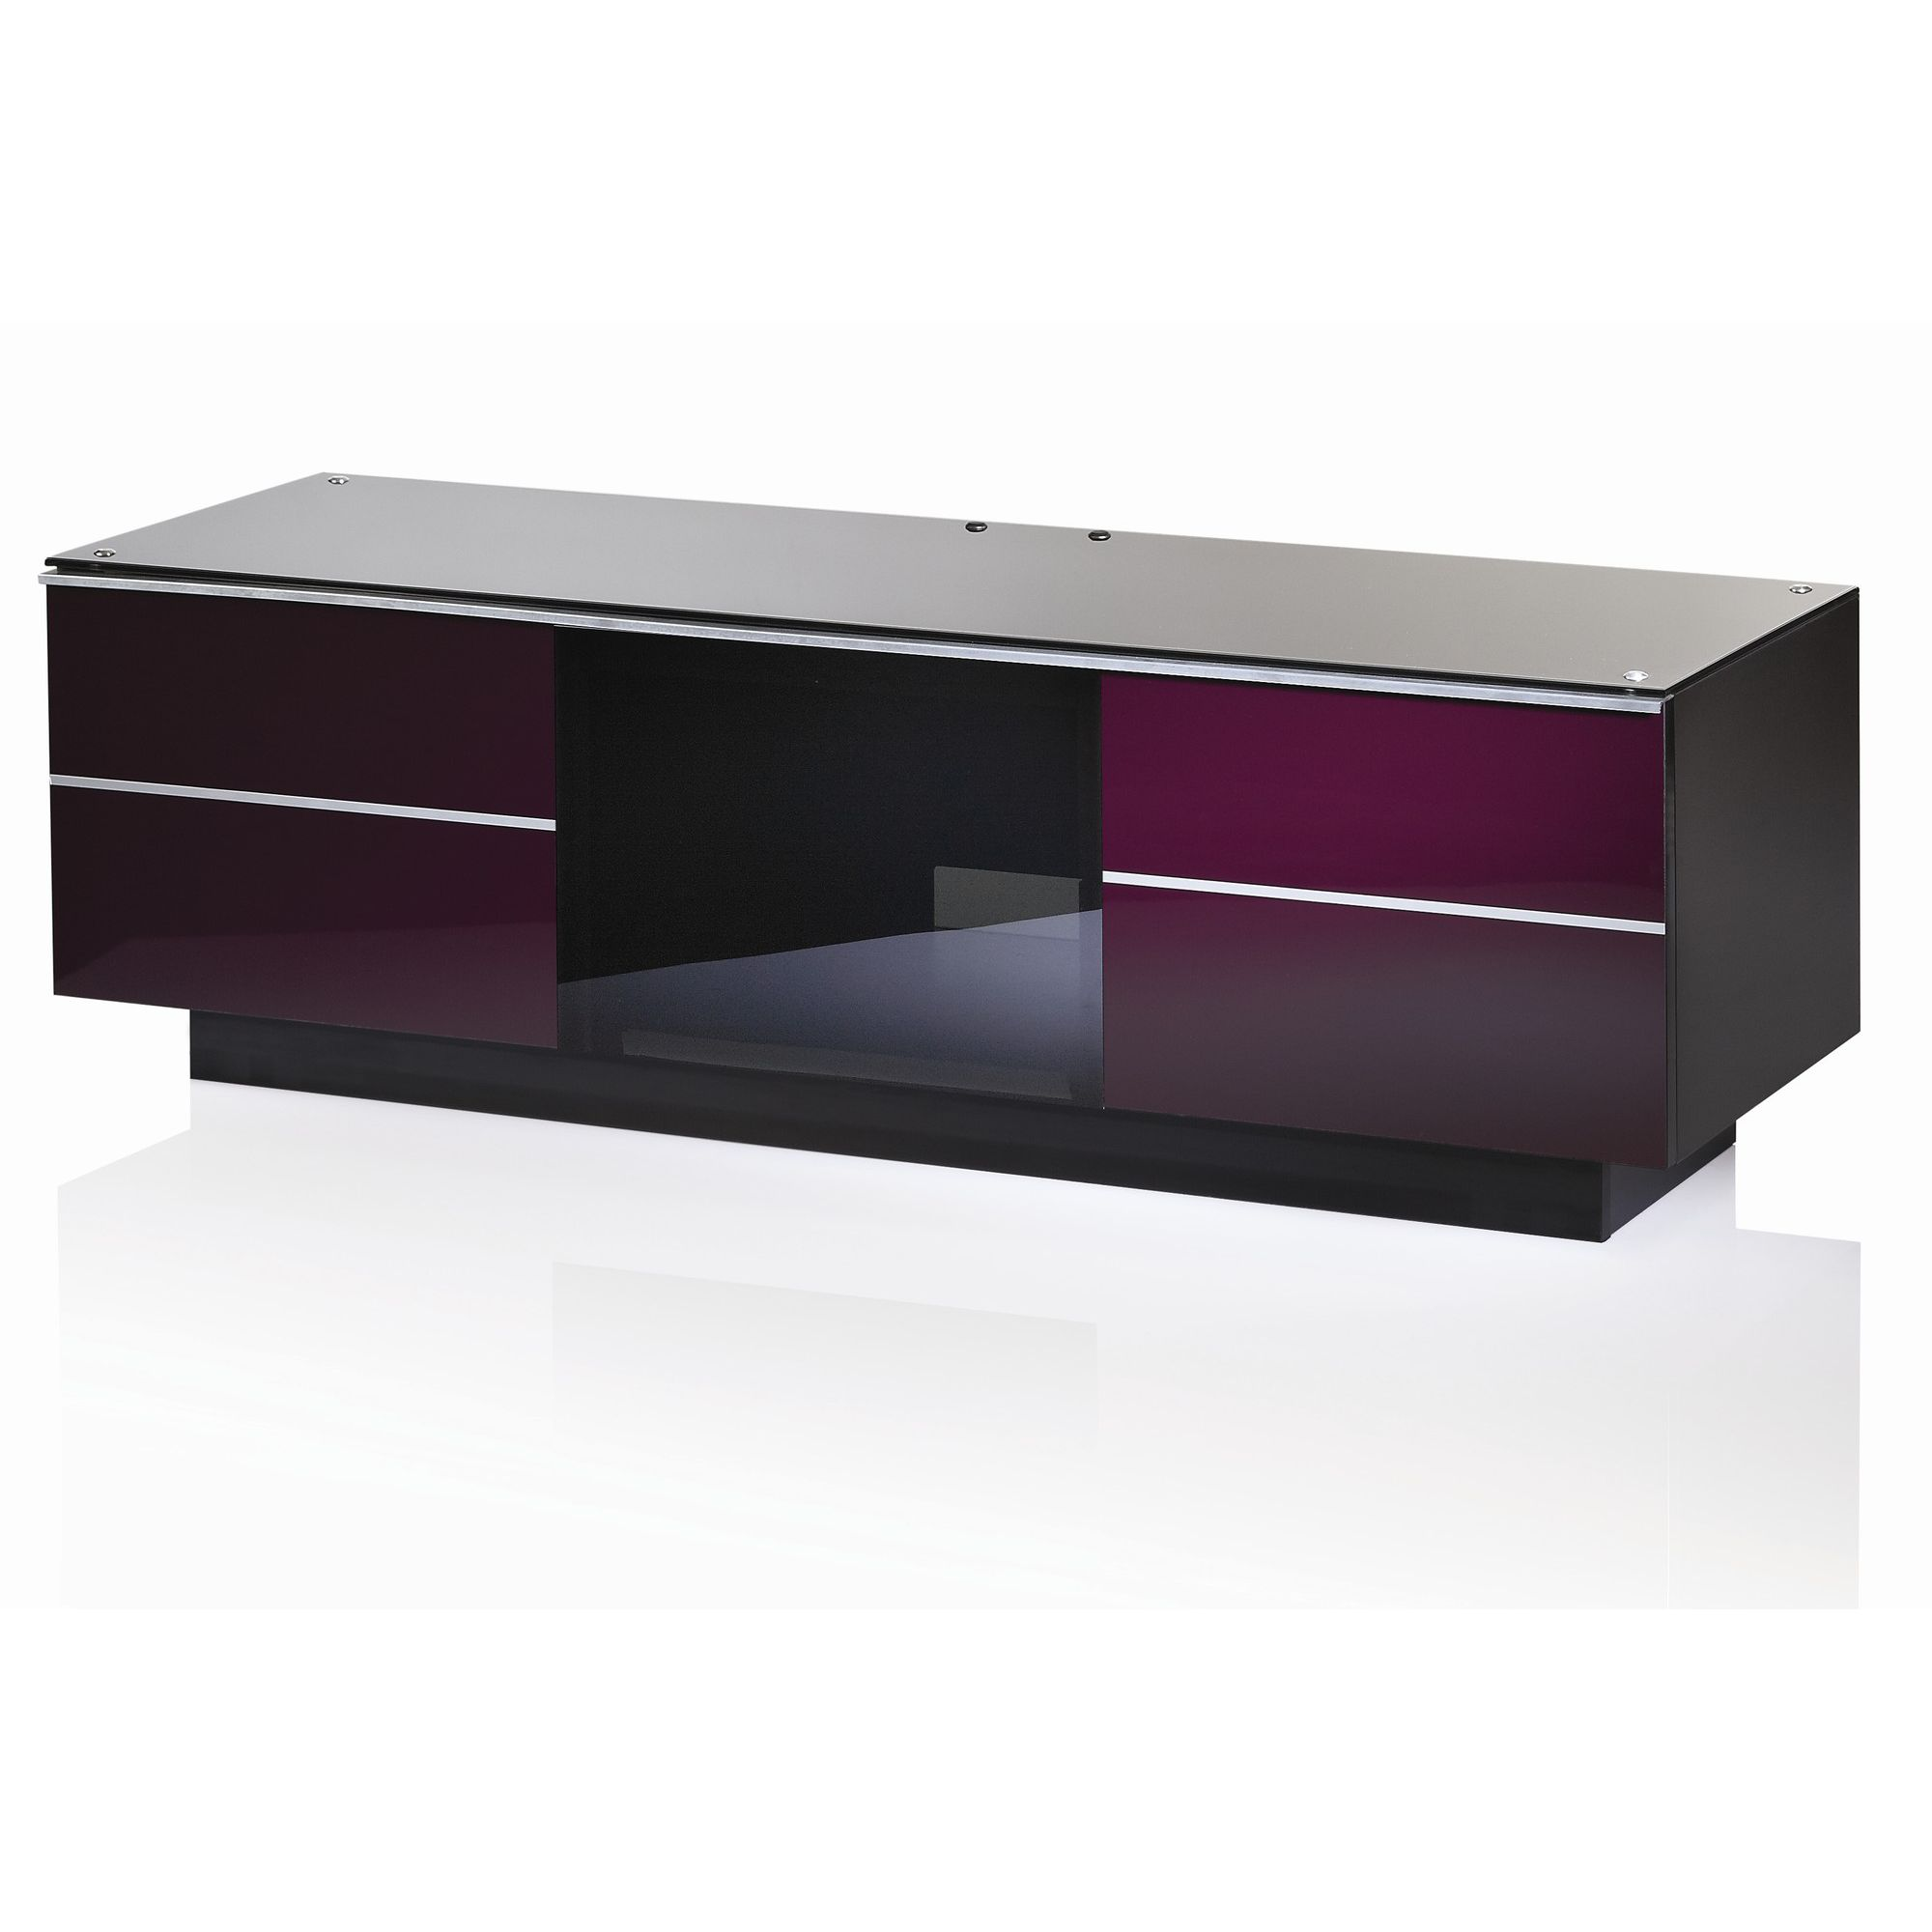 UK-CF G Series GG TV Stand - Damson - 135cm at Tesco Direct